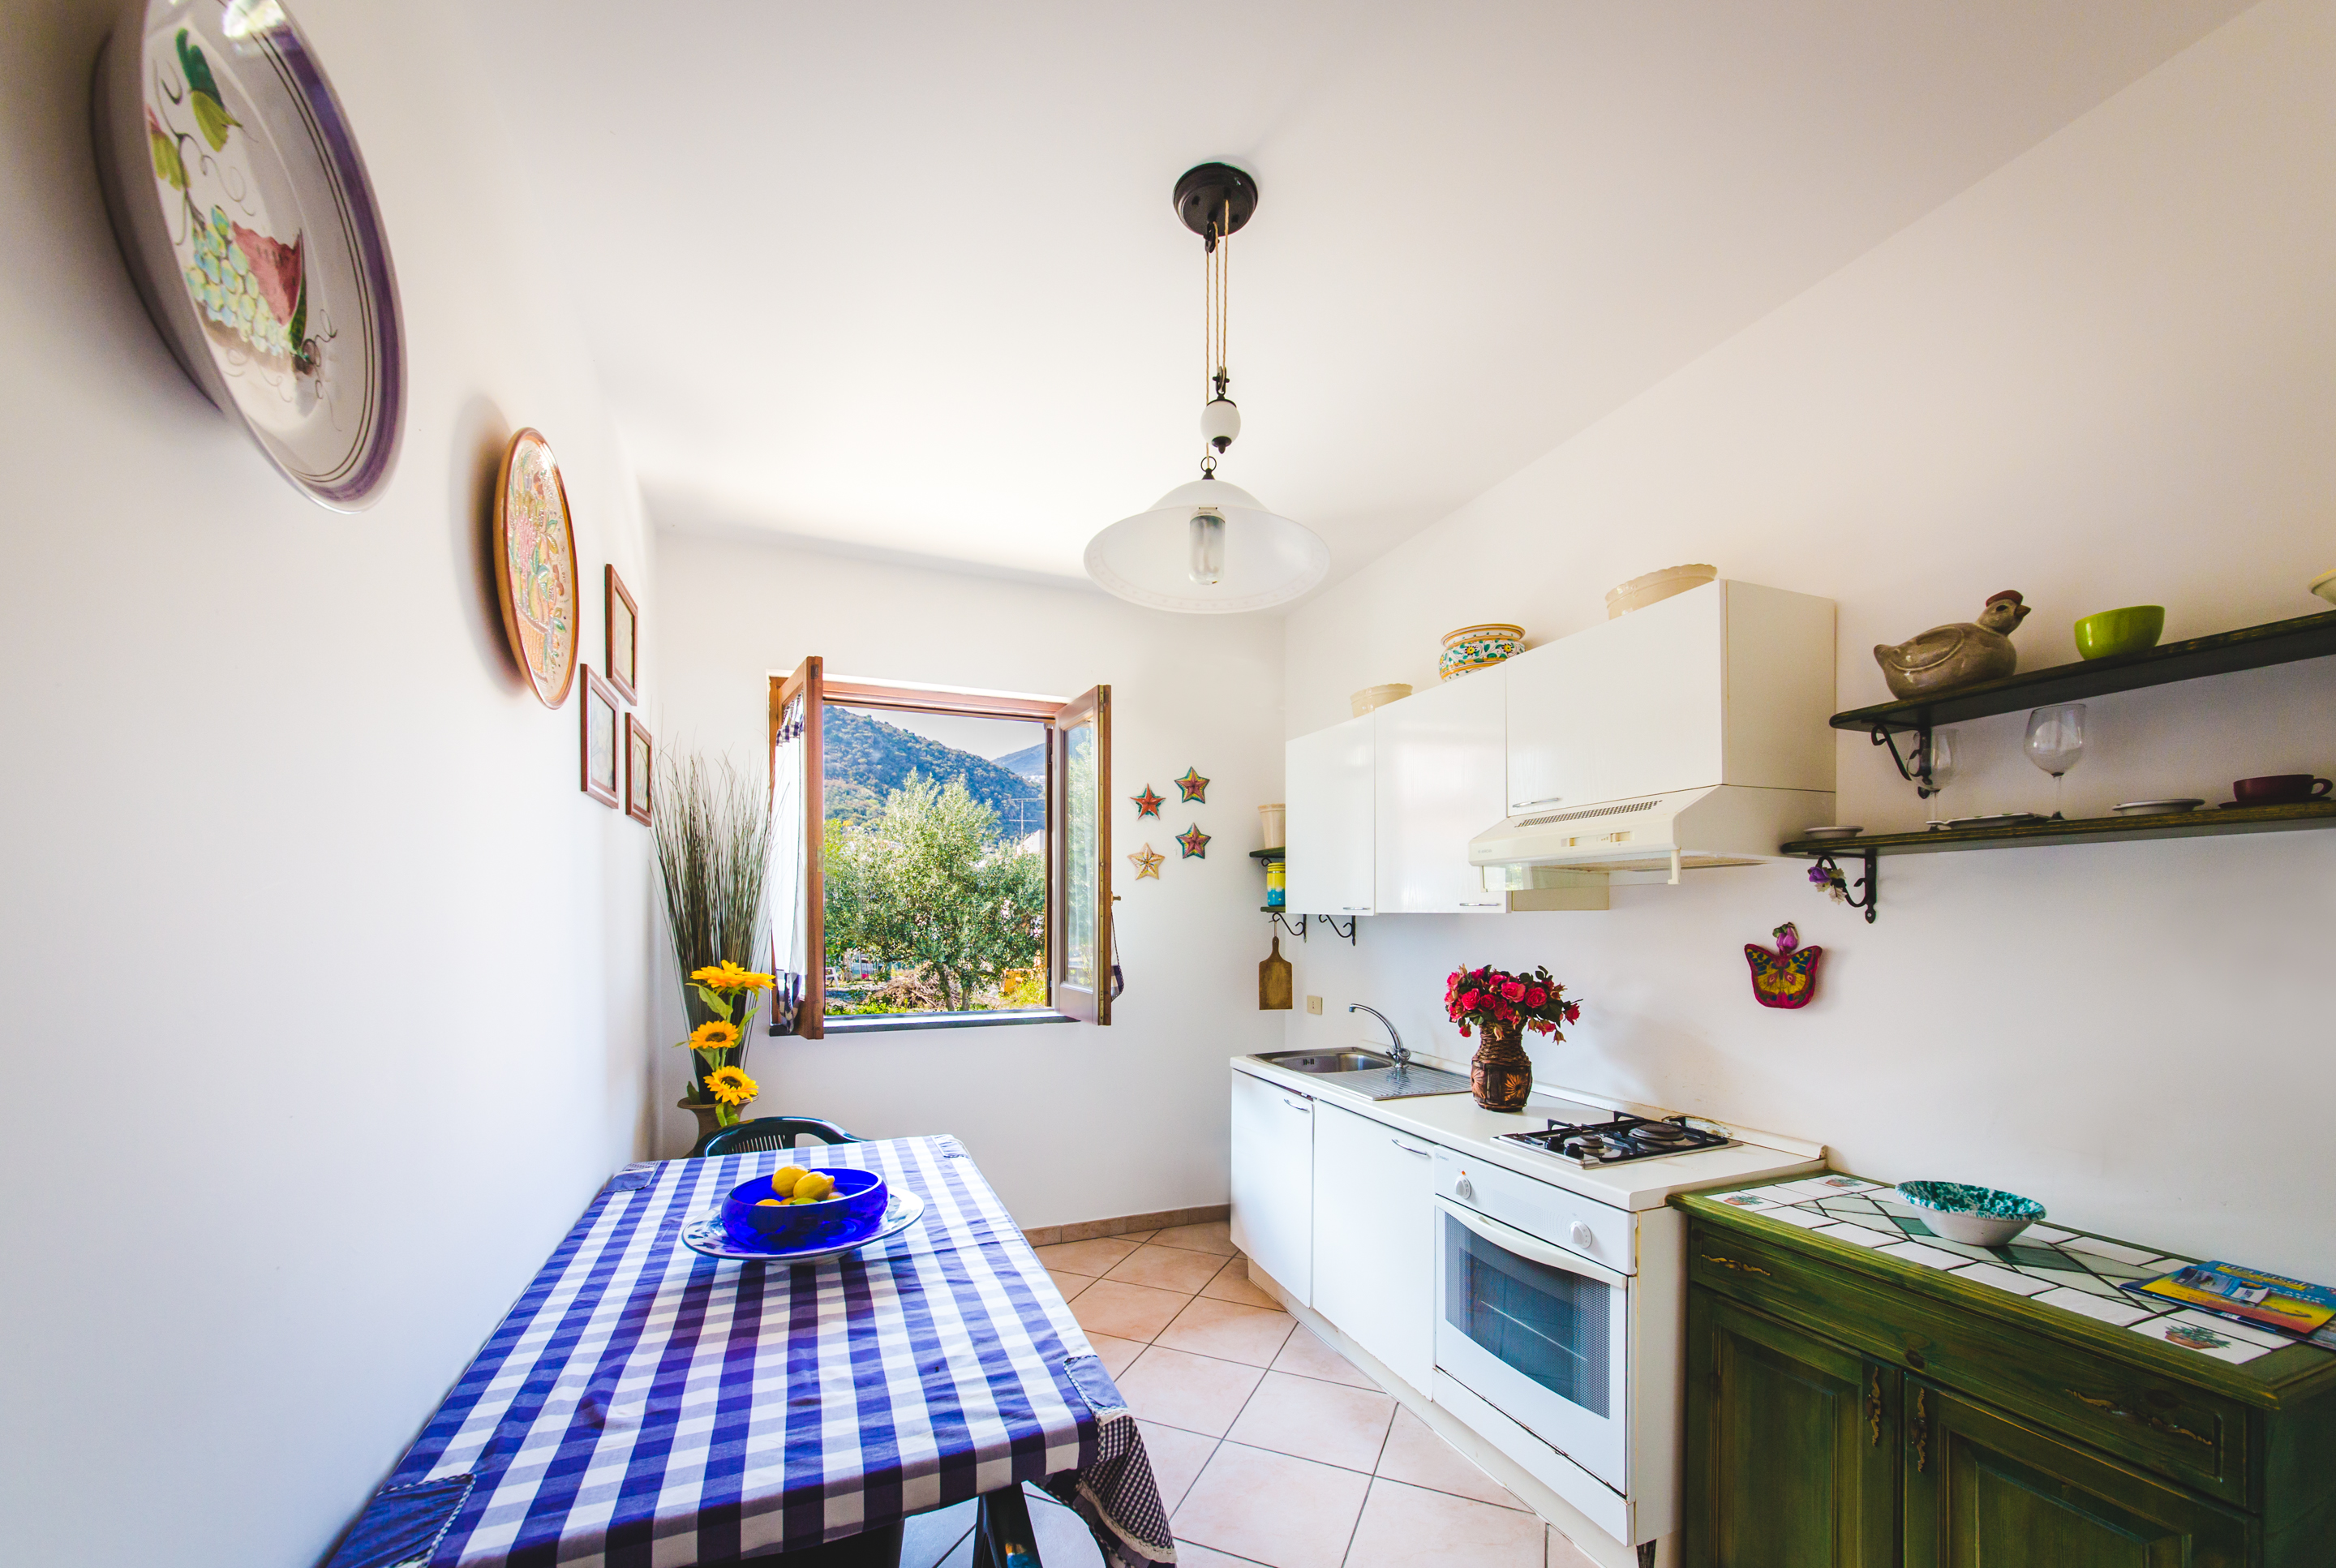 Holiday rentals - APPARTAMENTO - SICILIA (LIPARI - MESSINA) ~